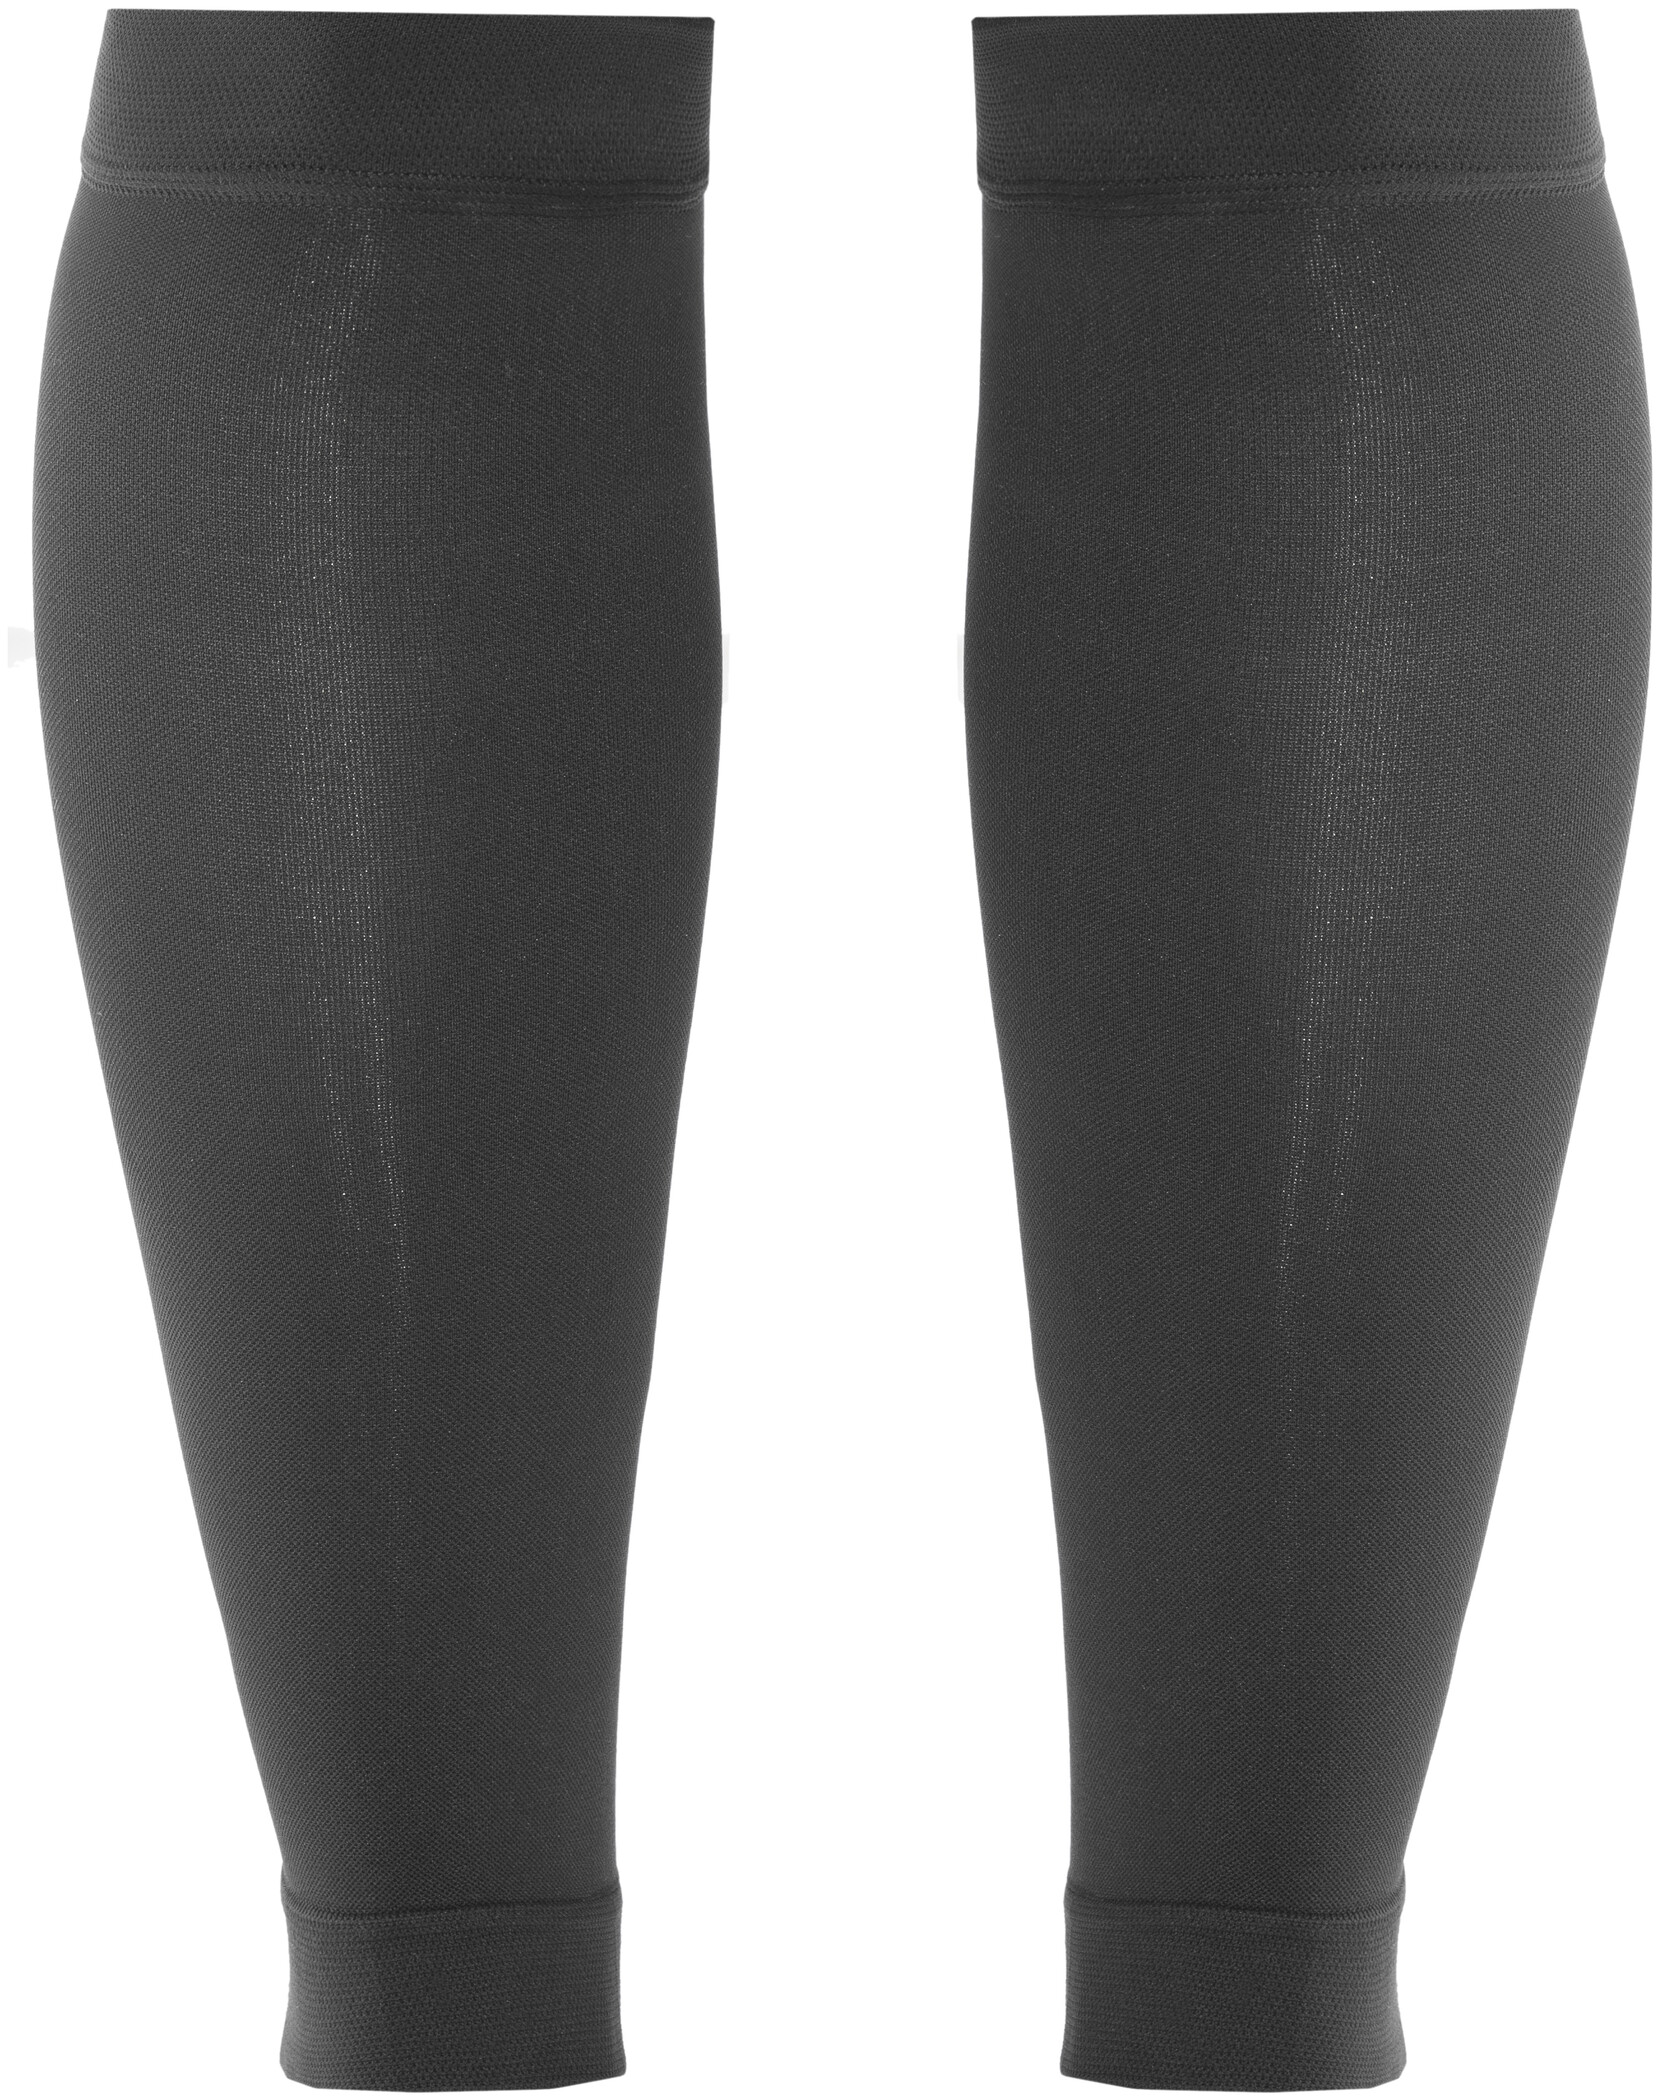 Gococo Compression Superior Varmere, black (2019) | Compression